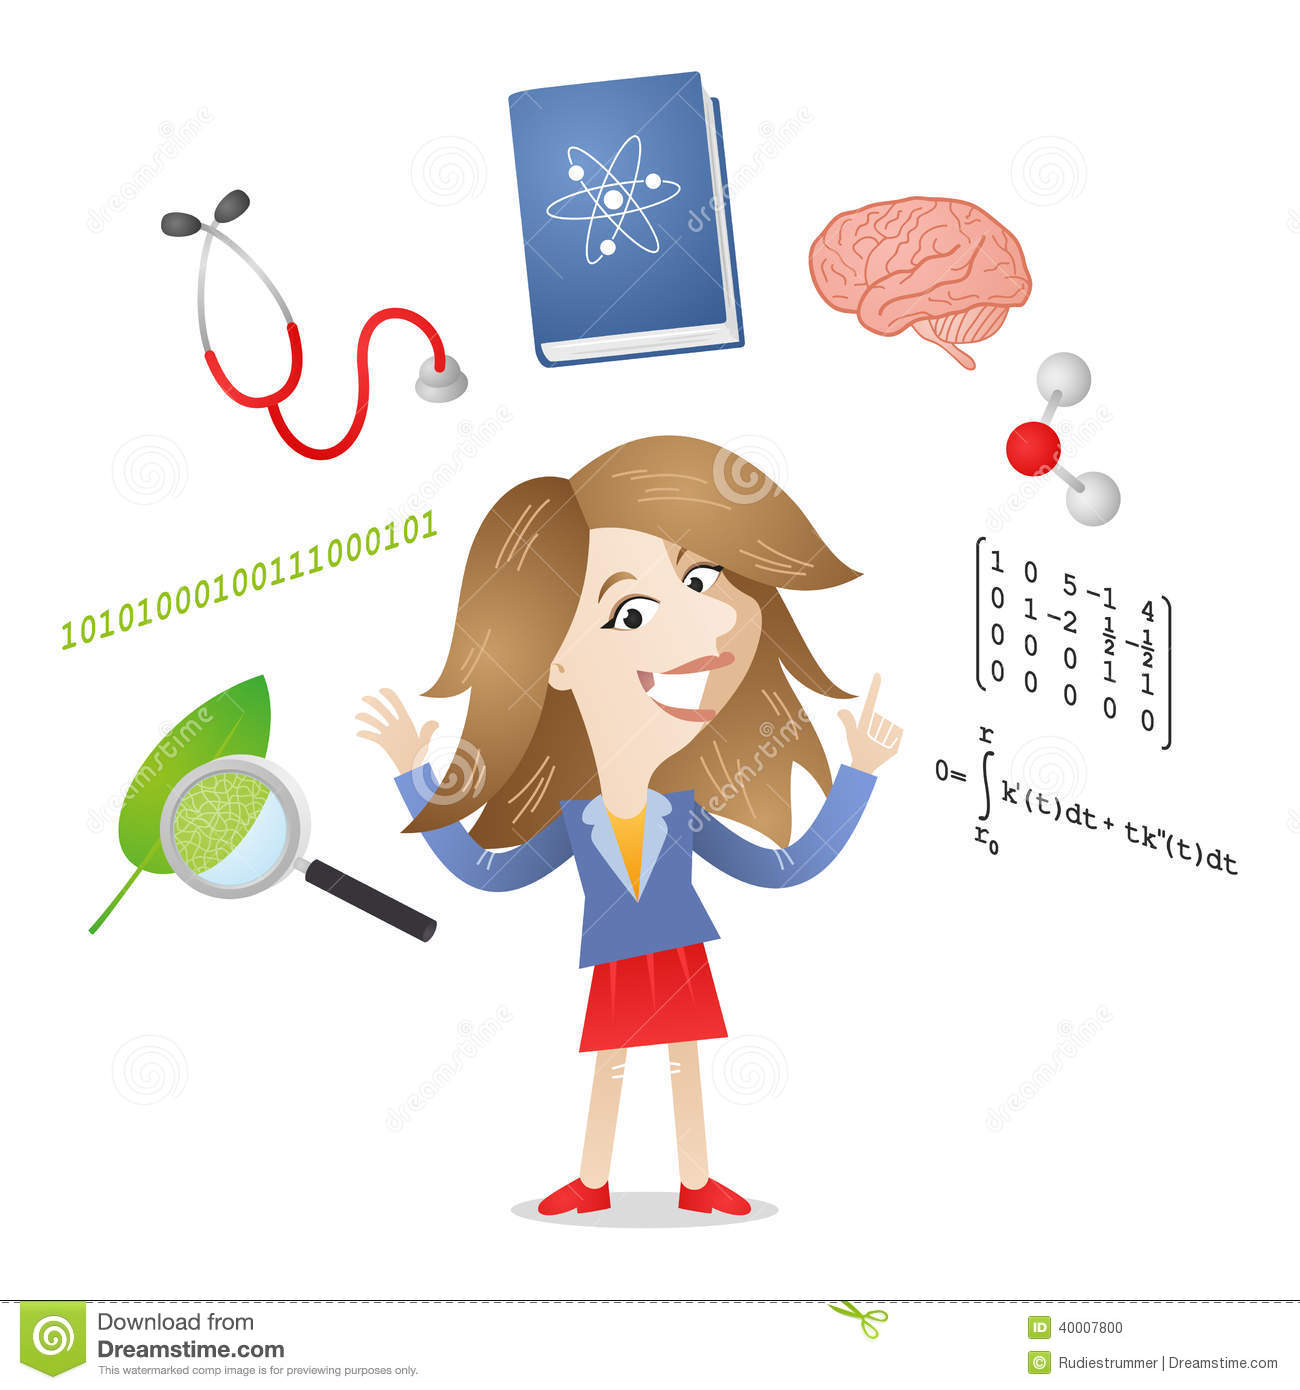 Persona 4 The Animation Wallpaper Young Student Science Symbols Stock Vector Illustration